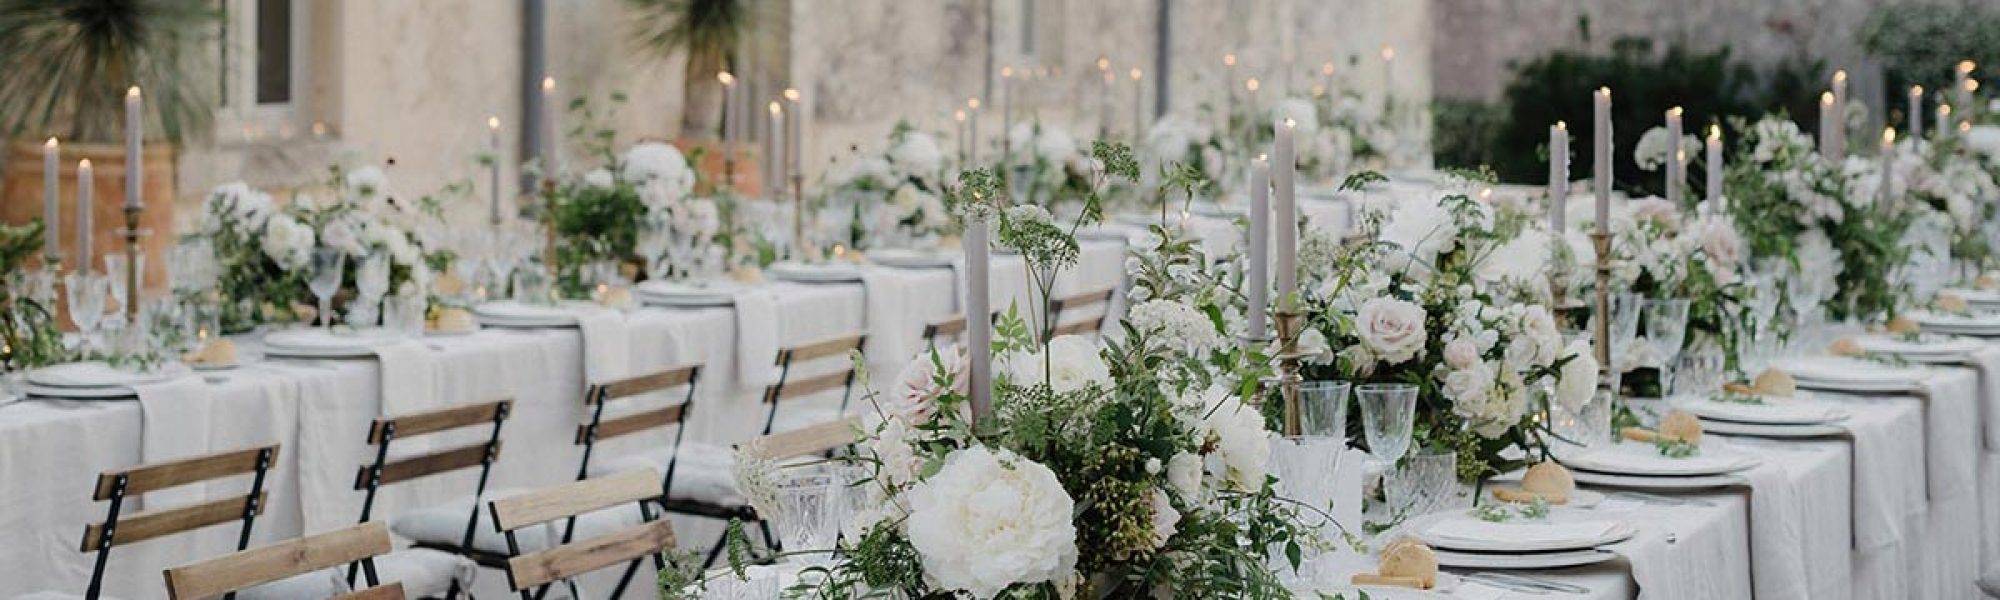 Planning a wedding in Italy. Photo by Cinzia Bruschini